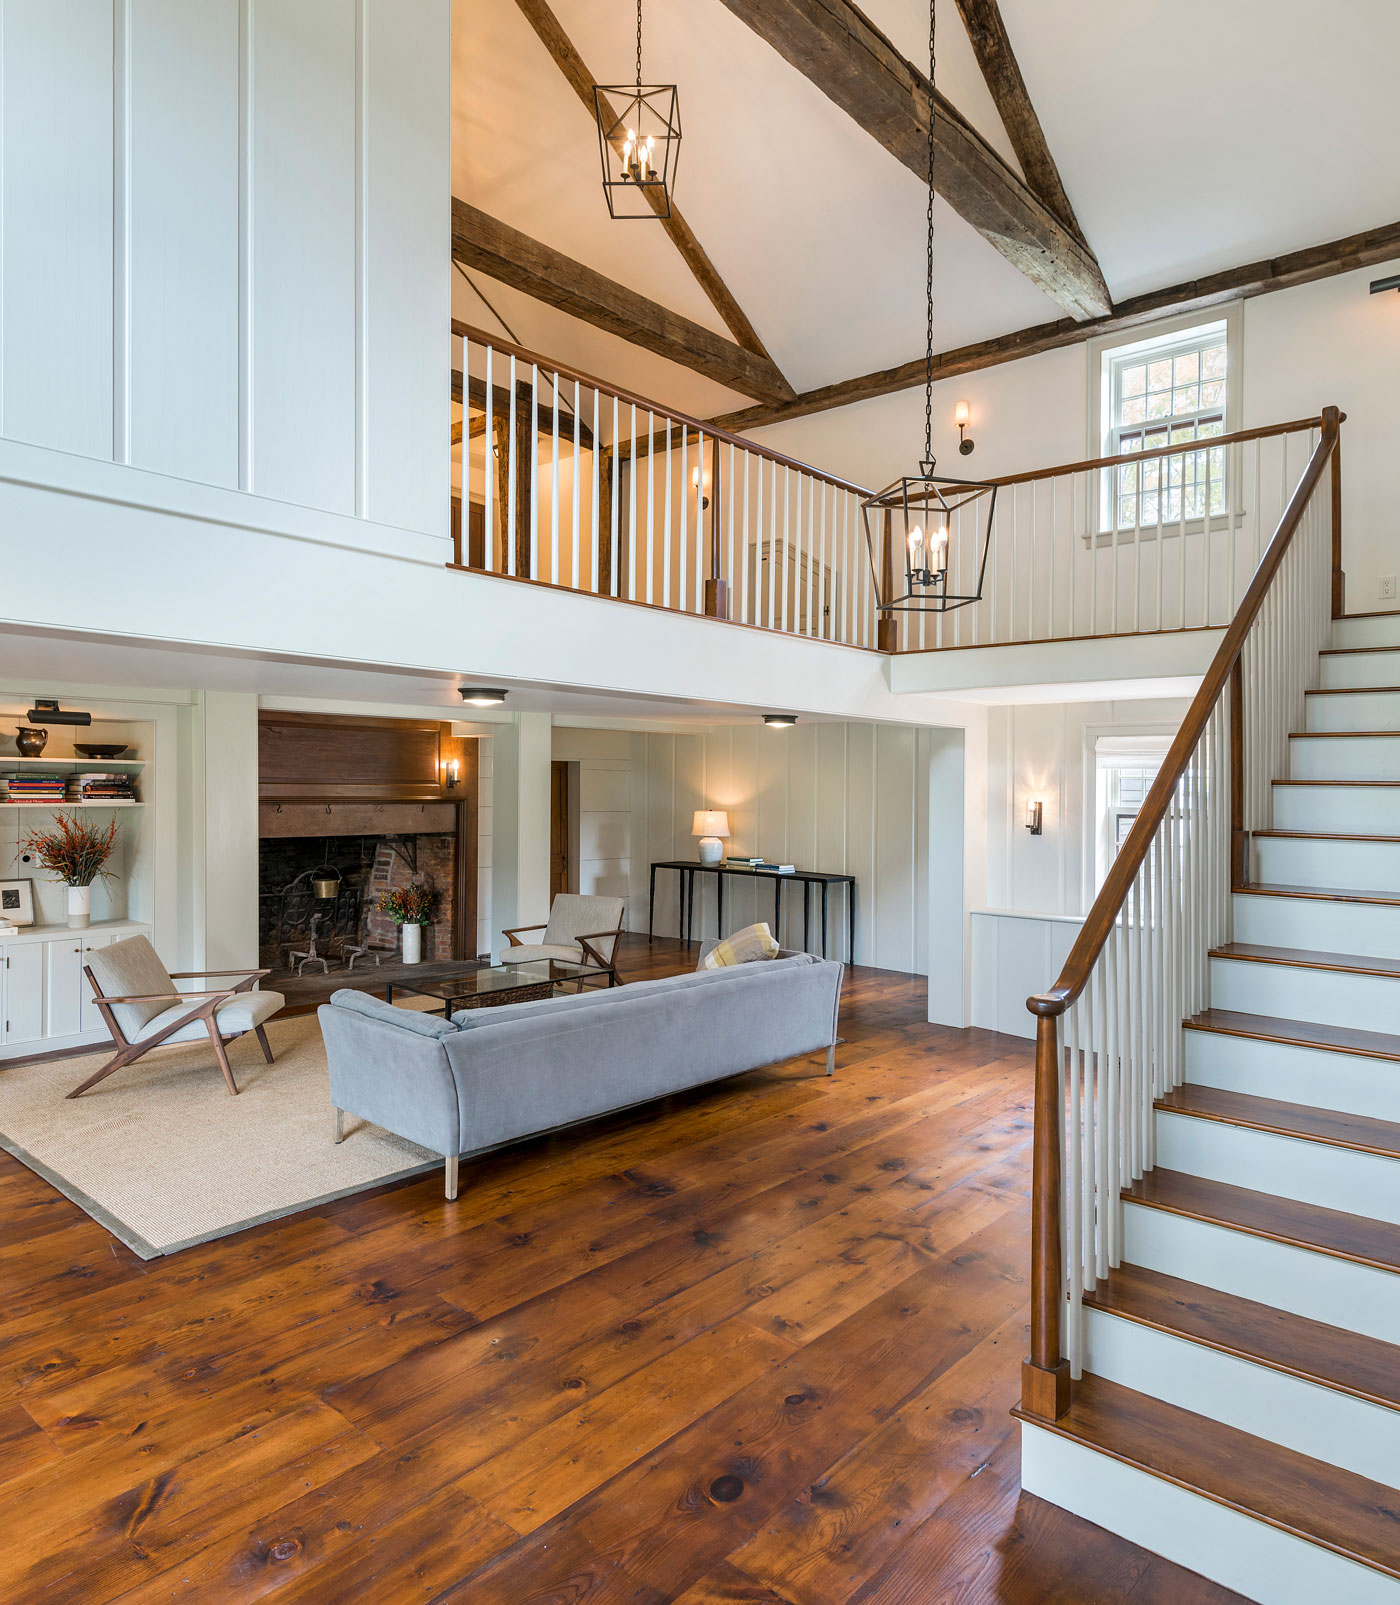 custom living area with vaulted ceilings and a stairway that leads to open second floor